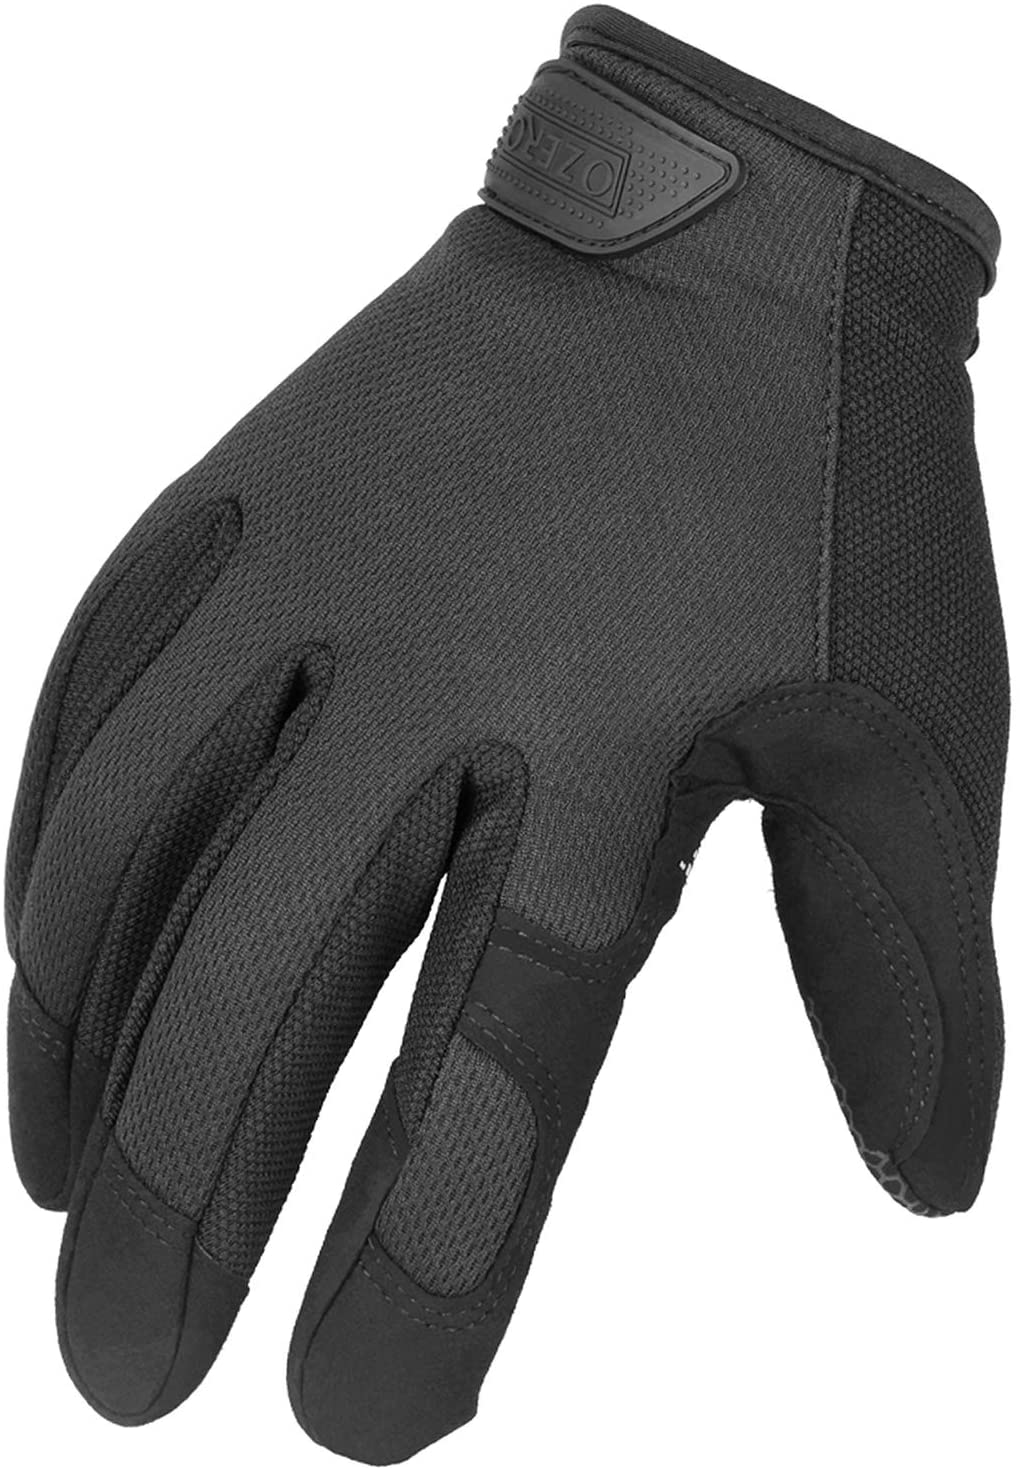 Tactical Gloves with Touch Screen Fingertips